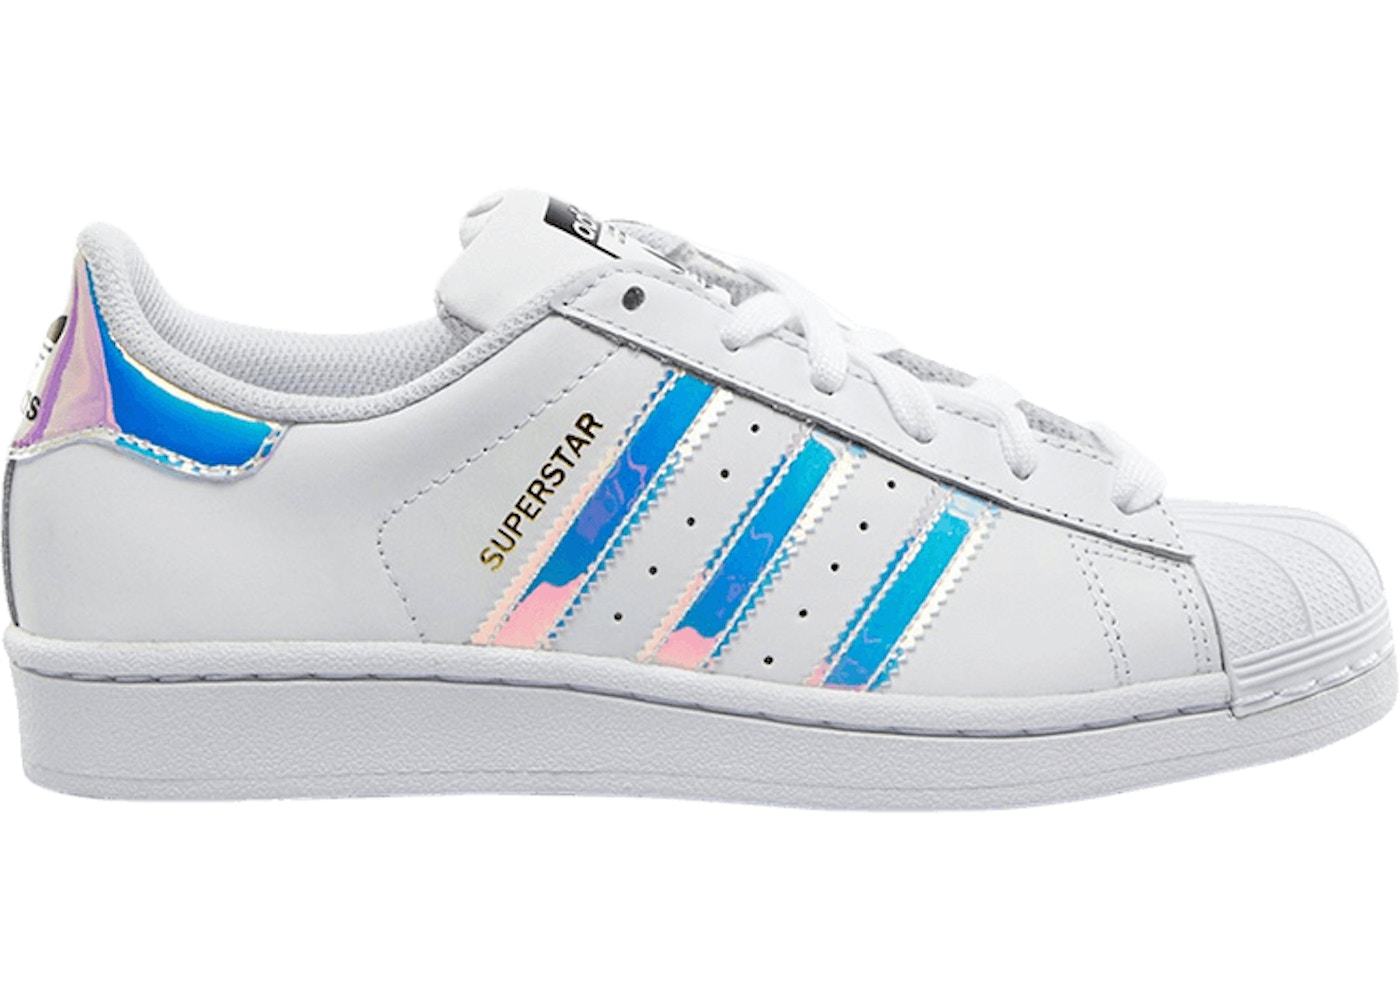 adidas Superstar White Iridescent (GS)